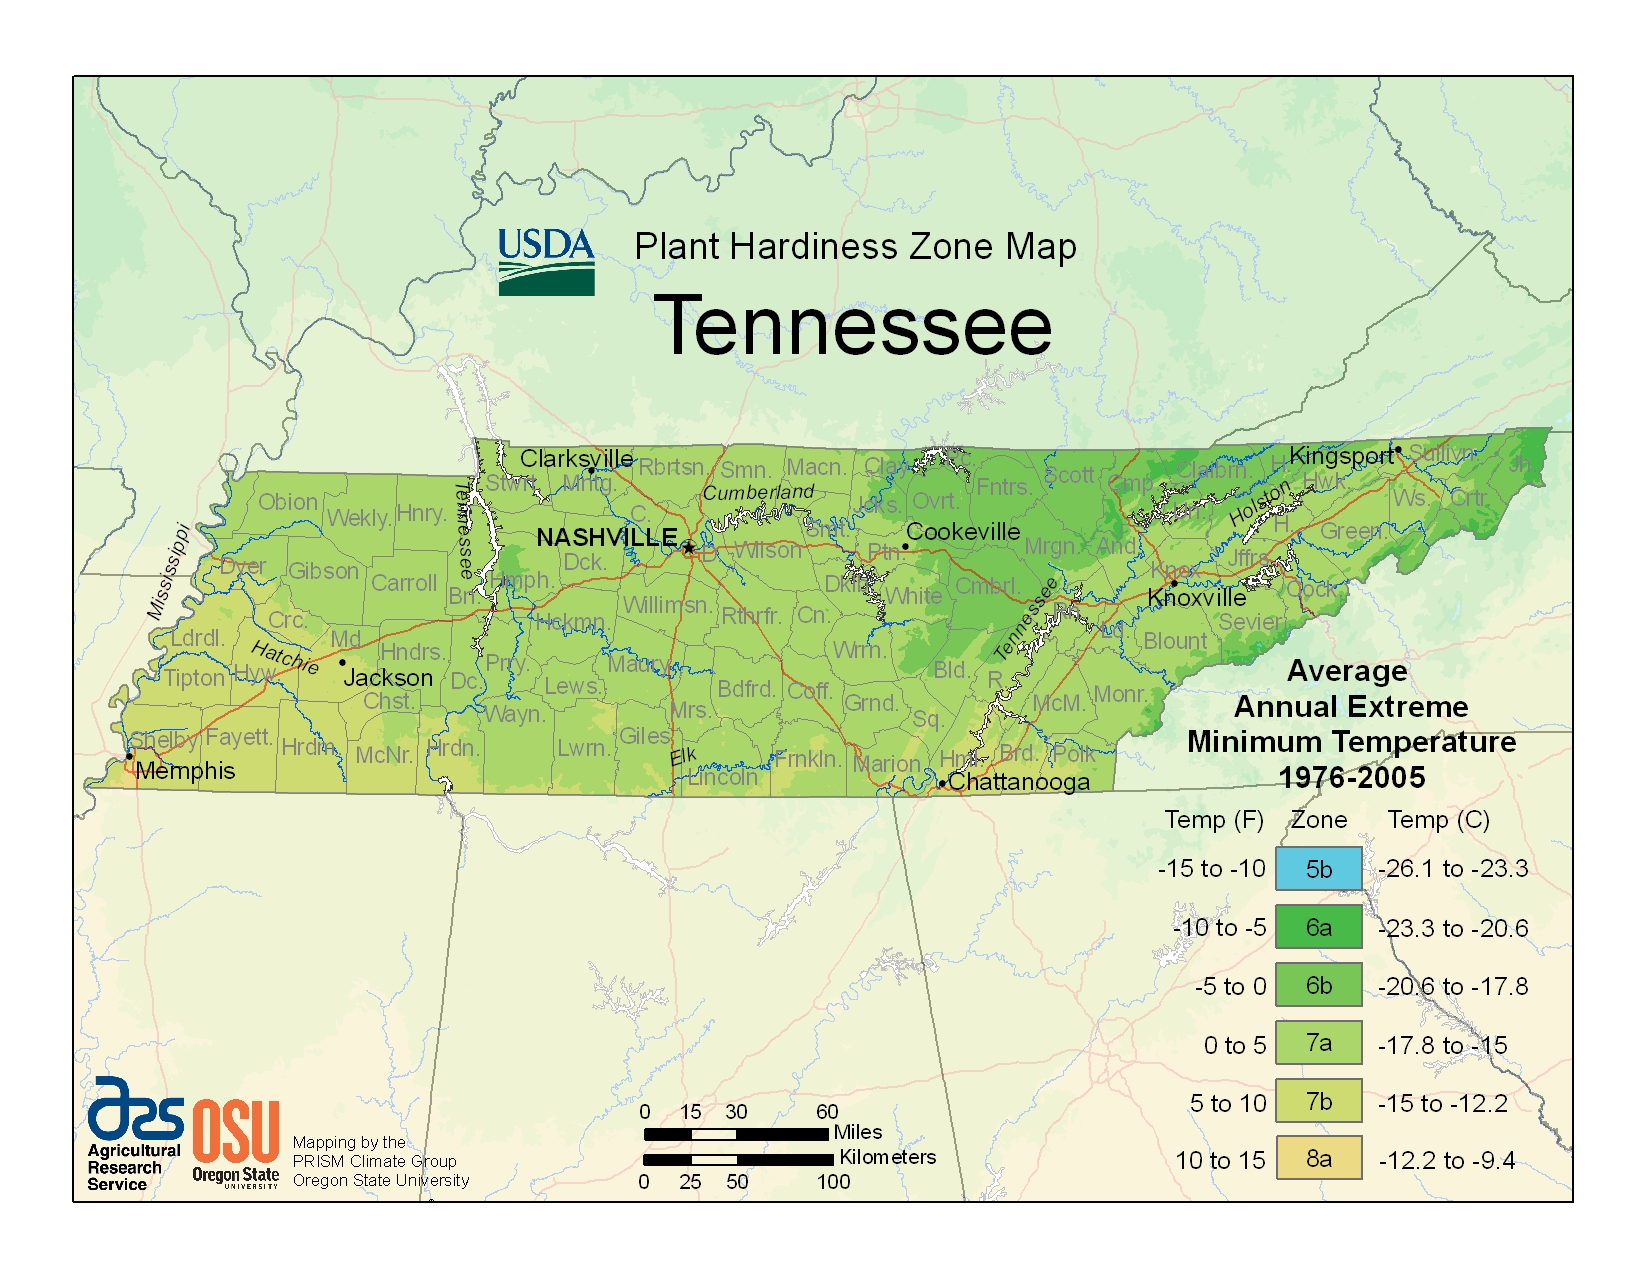 nashville tennessee time zone map with Plant Hardiness Zones on Fall Fun also Map Of Eastern Tennessee With Cities as well Map Of Lake Barkley Kentucky besides Shipping Returns in addition Tdiff3.